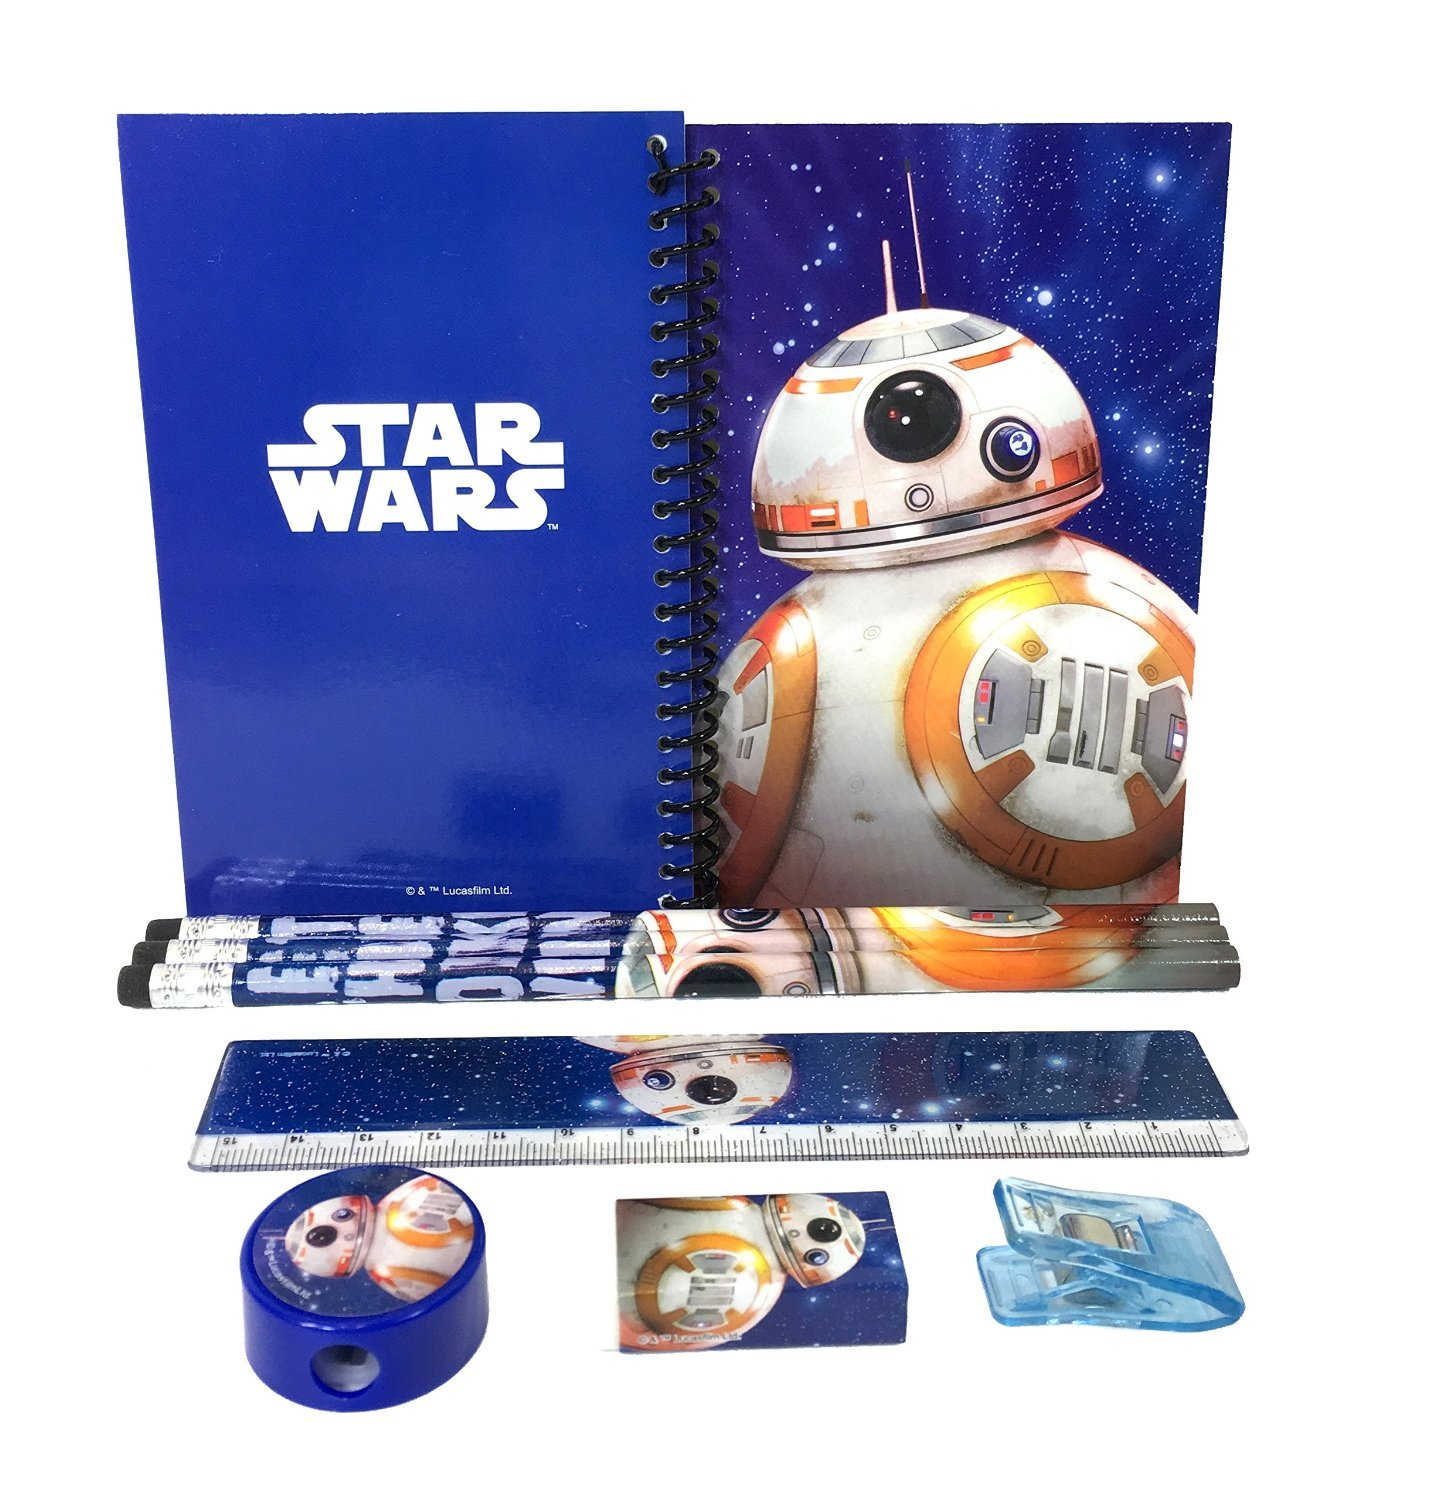 Disney Star Wars BB - 8 Stationary Set - Blue